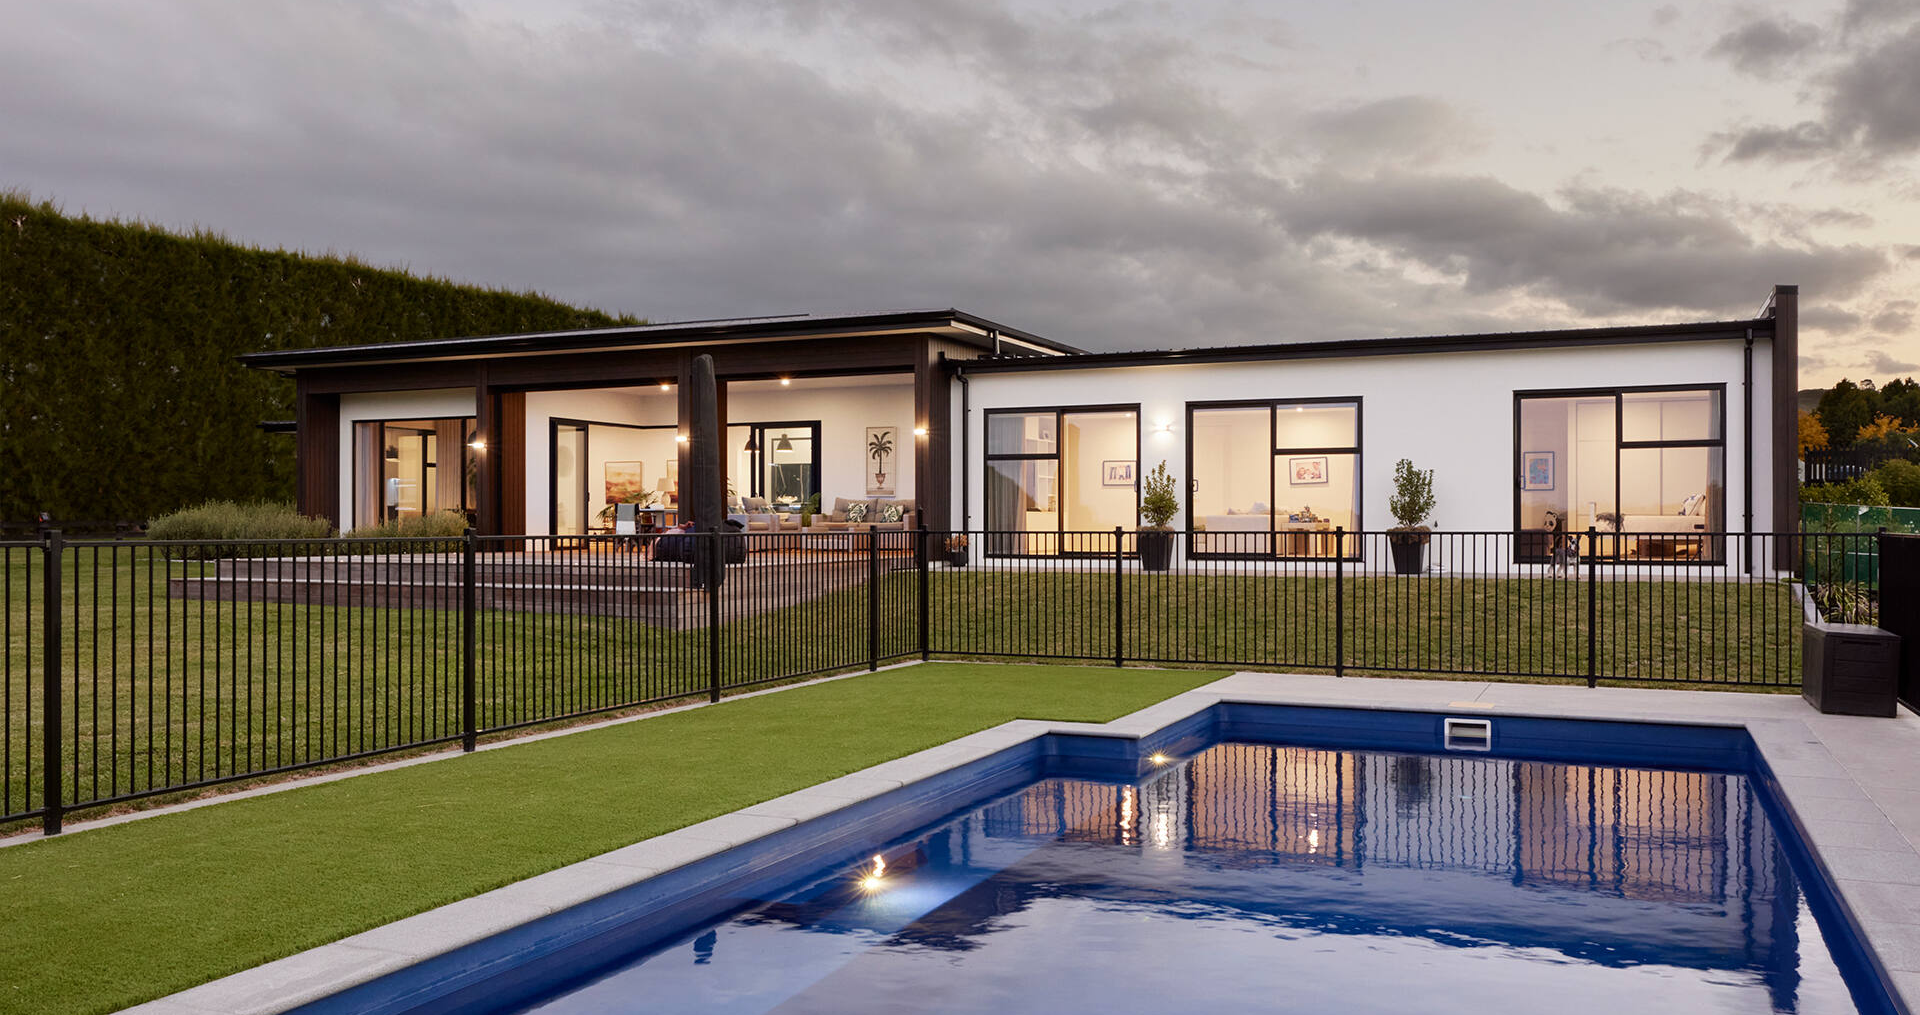 How this semi-rural family home celebrates its picturesque location